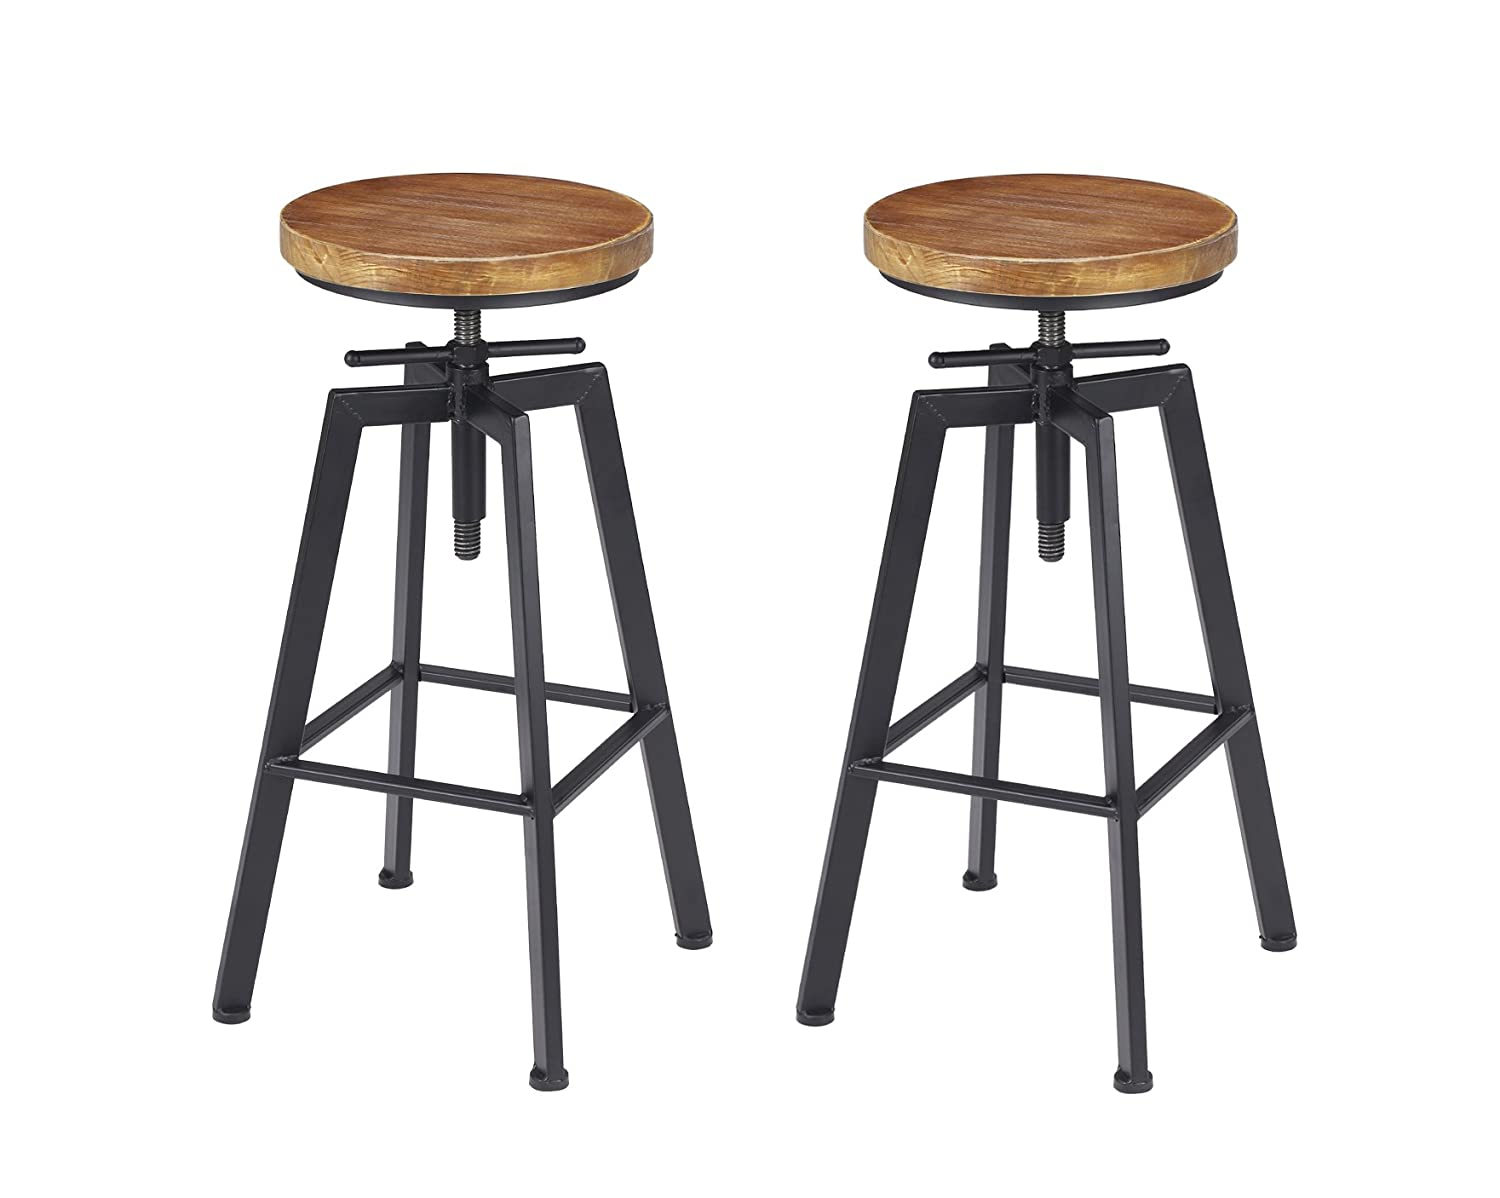 VILAVITA Set of 2 Bar Stools 27.5